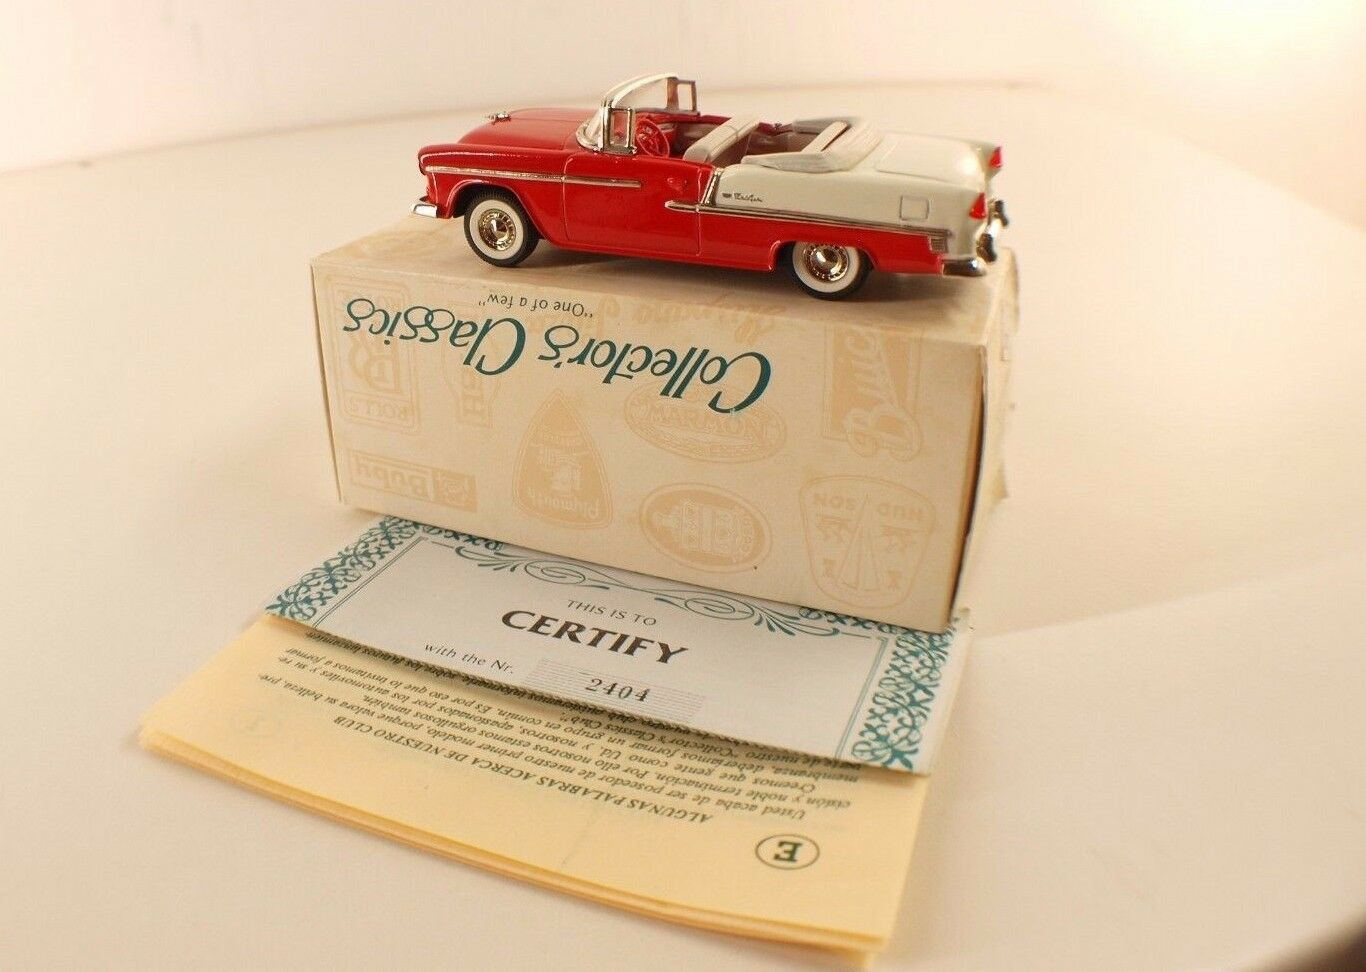 Collector's Classic plataine n° C1-5 Chevrolet 1955 neuf en boite 1 43 n° 2404